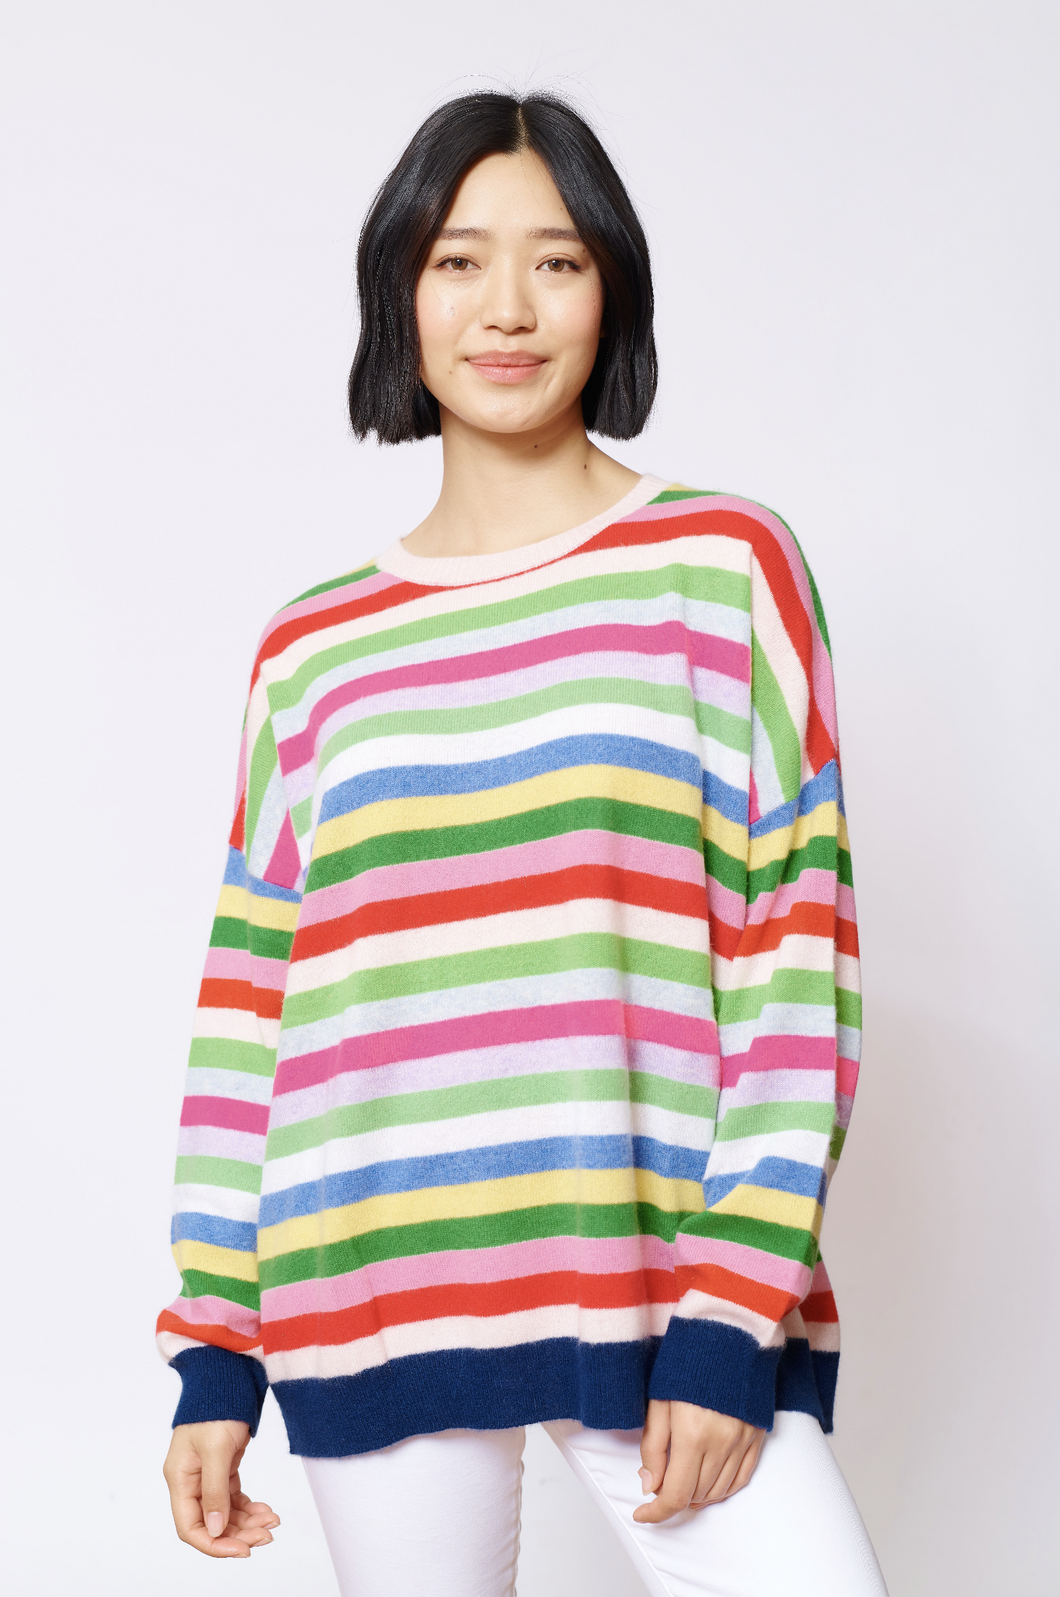 Van Gogh Cashmere Sweater Bright by Alessandra